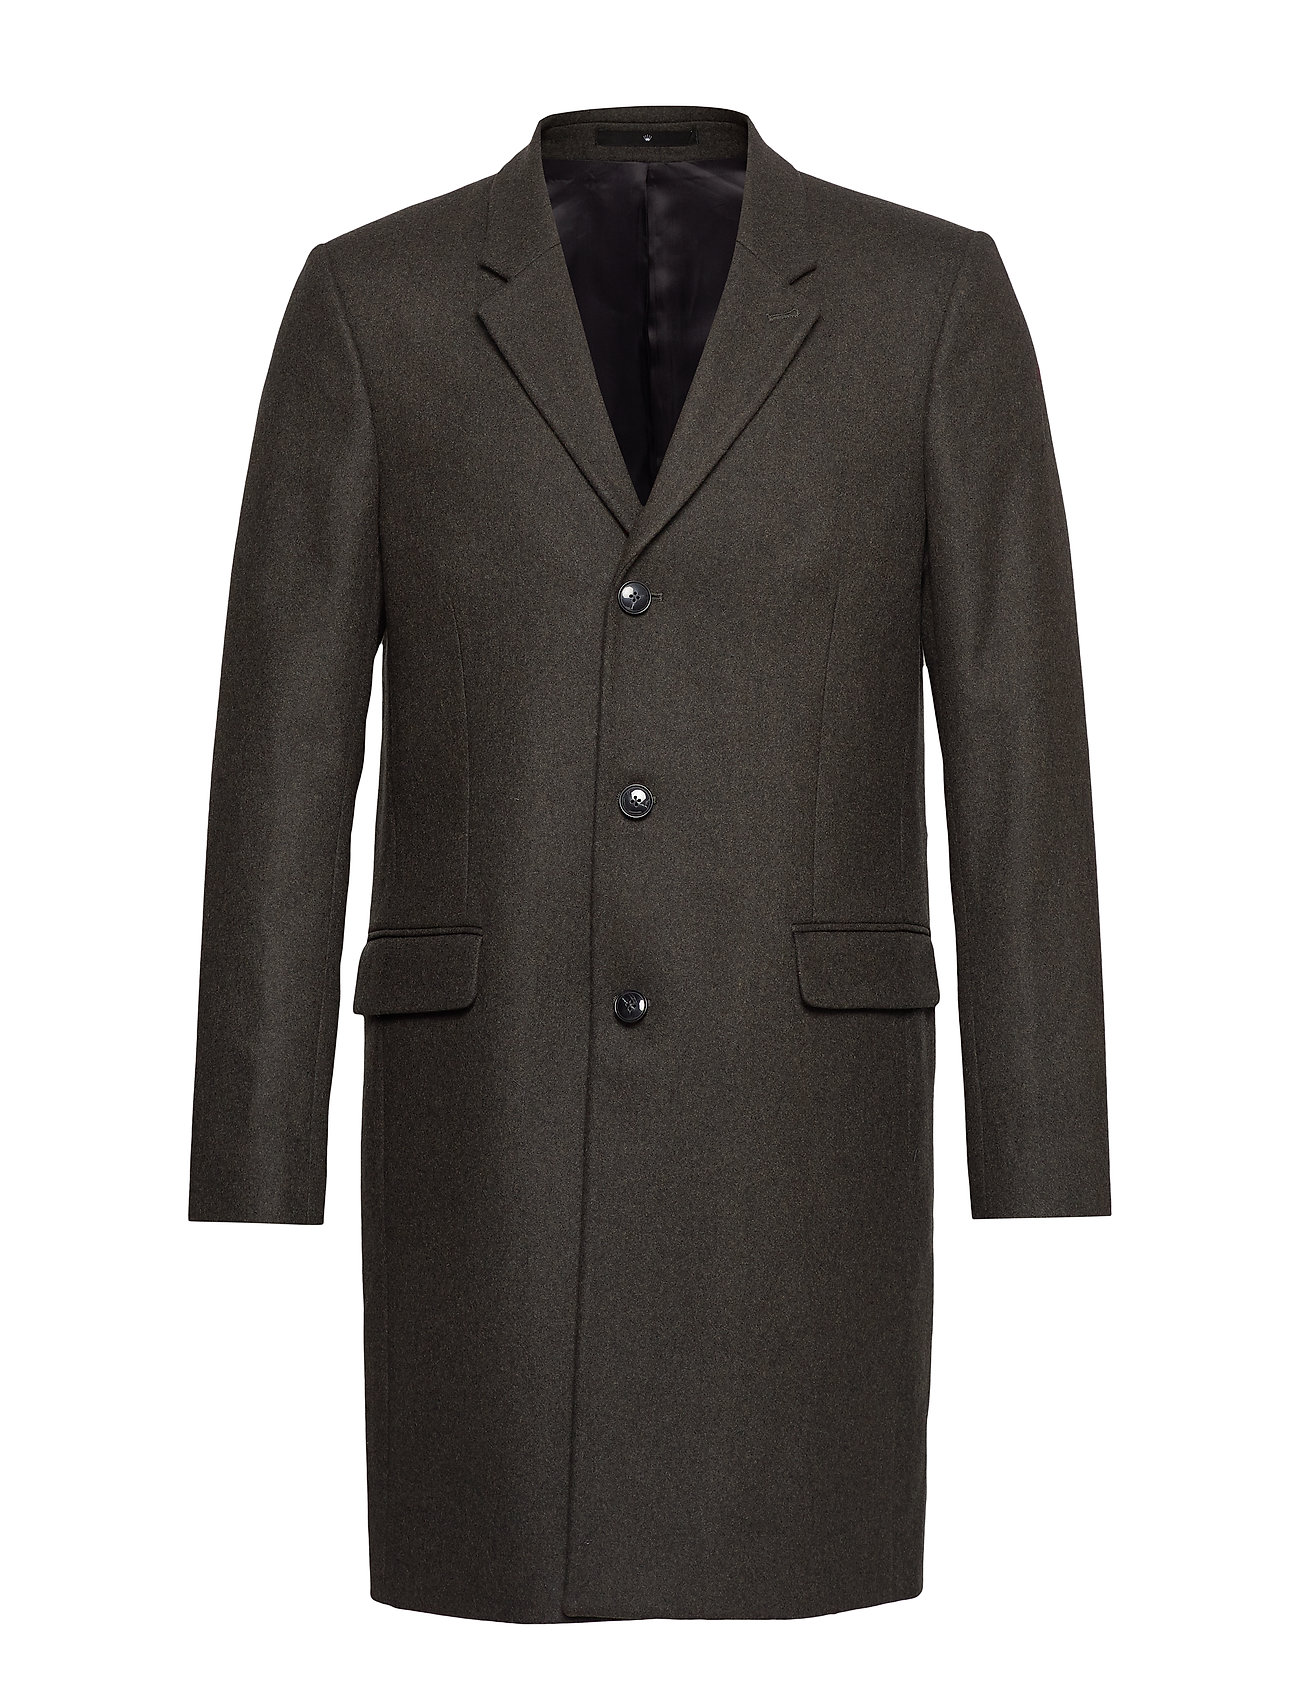 JUNK de LUXE Tailored wool coat - DK GREEN MEL